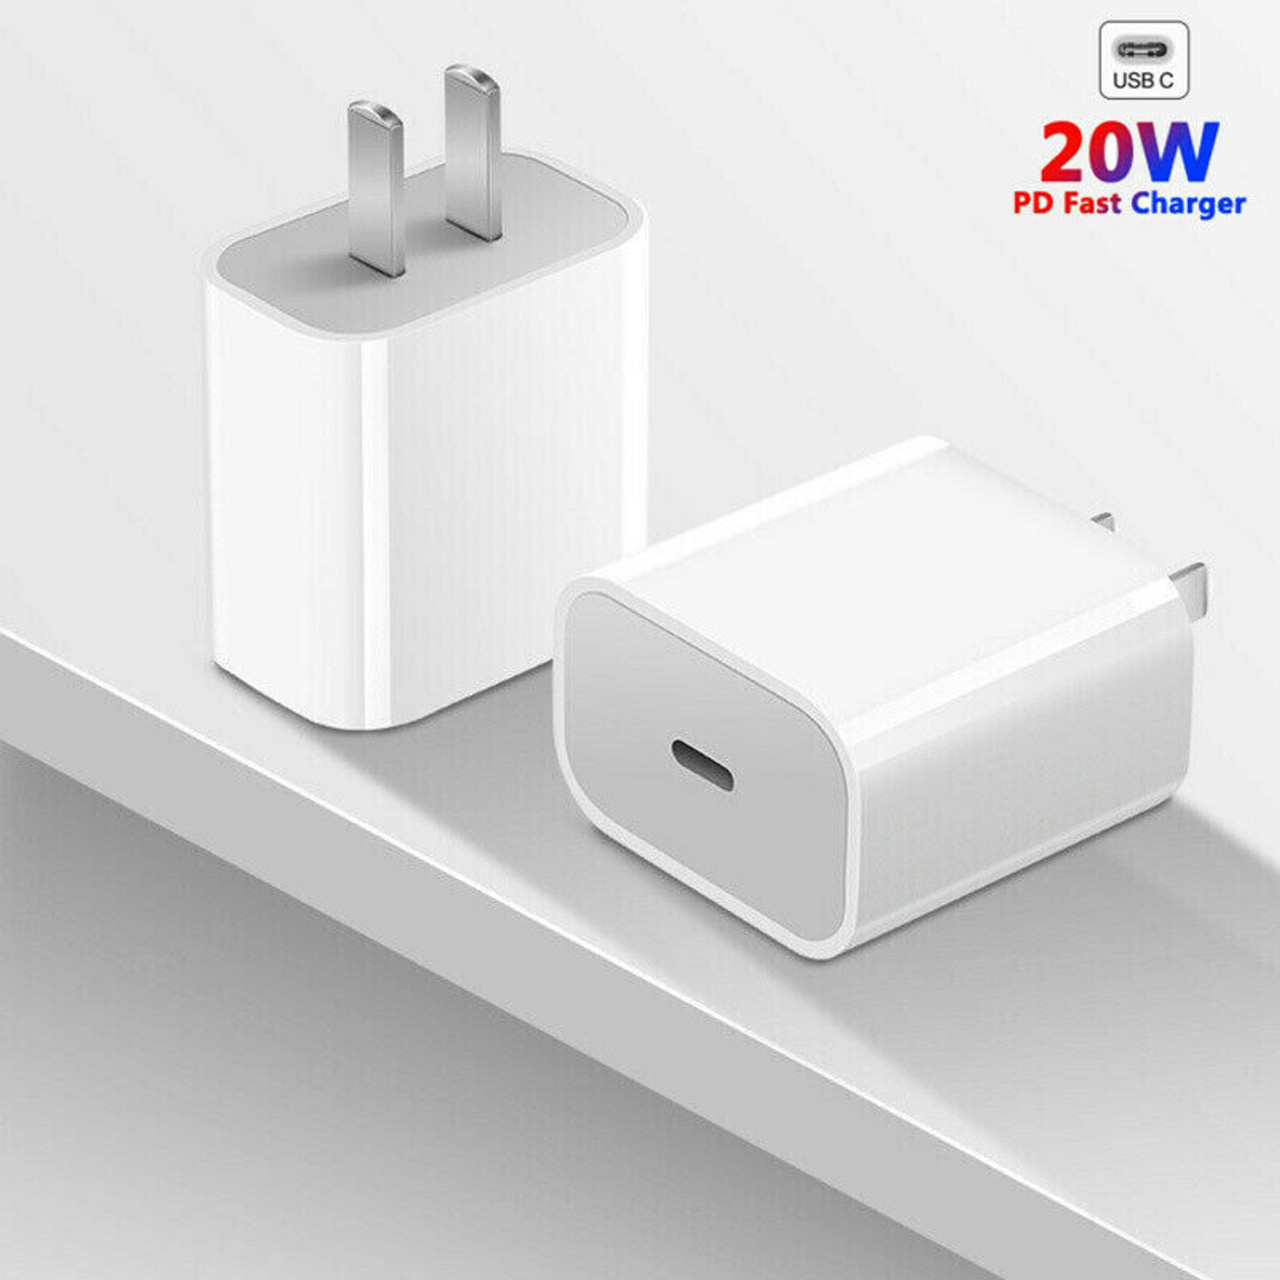 20W PD USB-C Power Adapter Fast Charger for iPhone 8/X/XR/XS/11/12/12 Pro/iPad